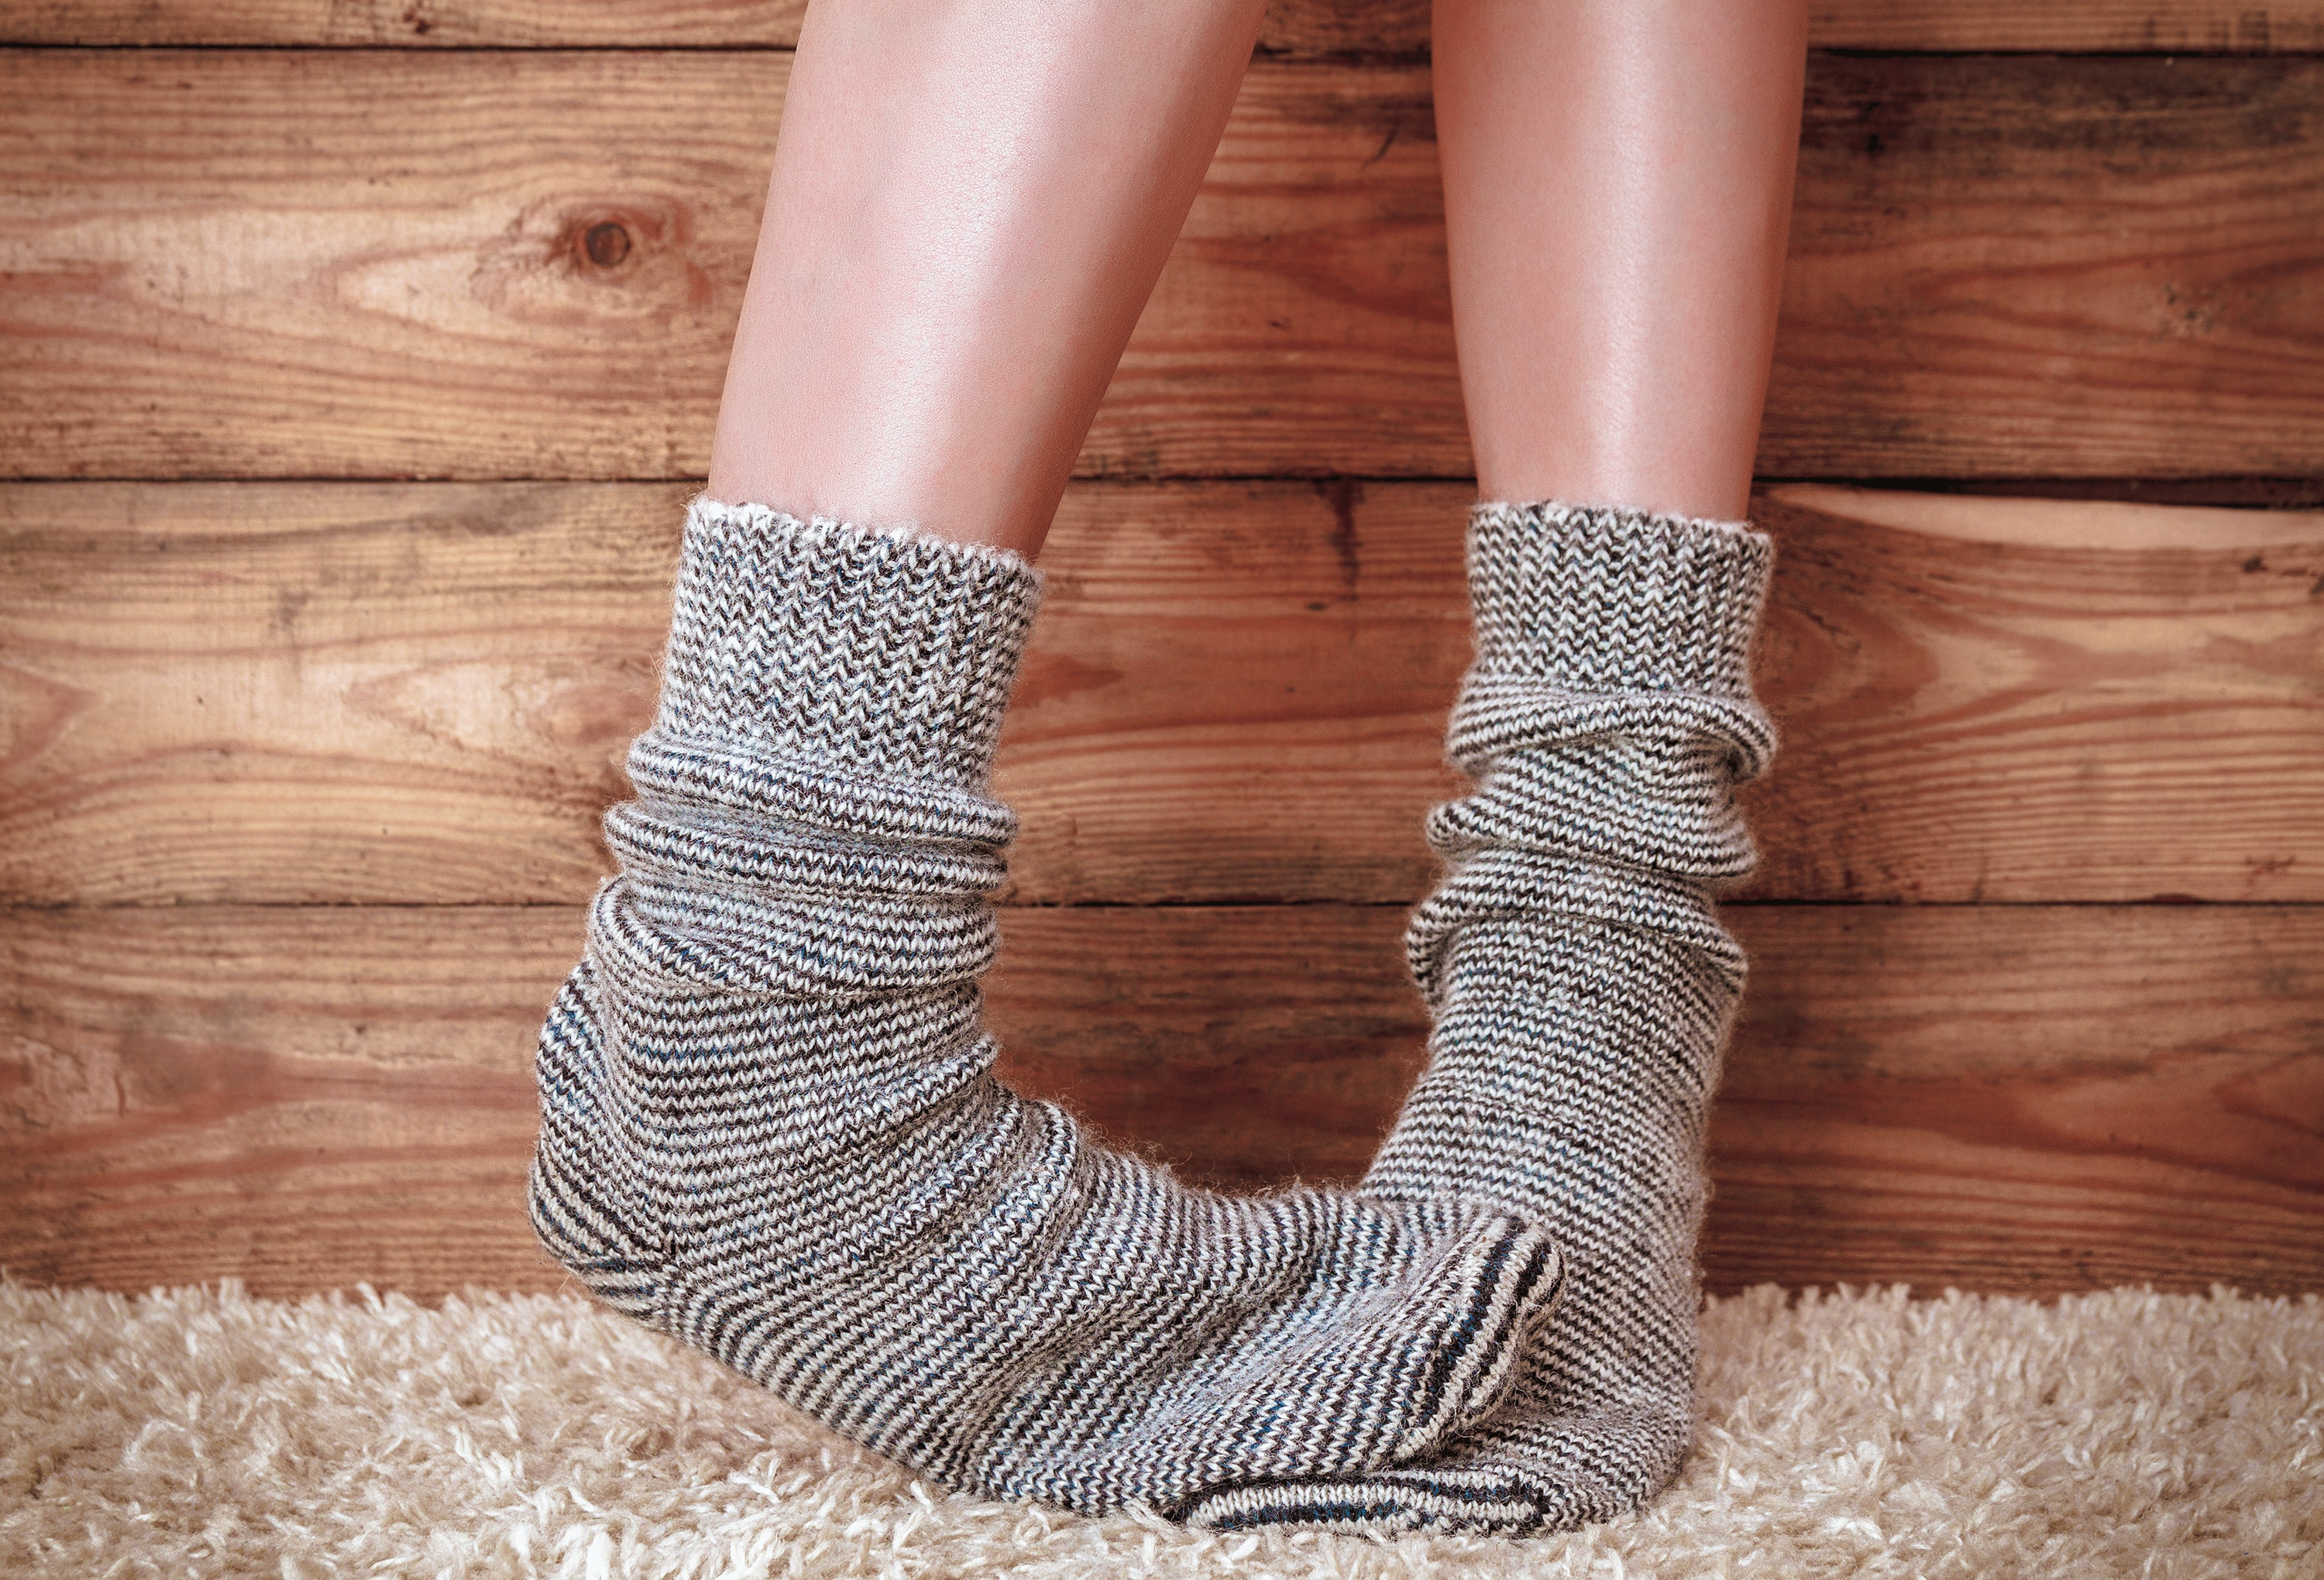 Feet cold: causes, treatment 29